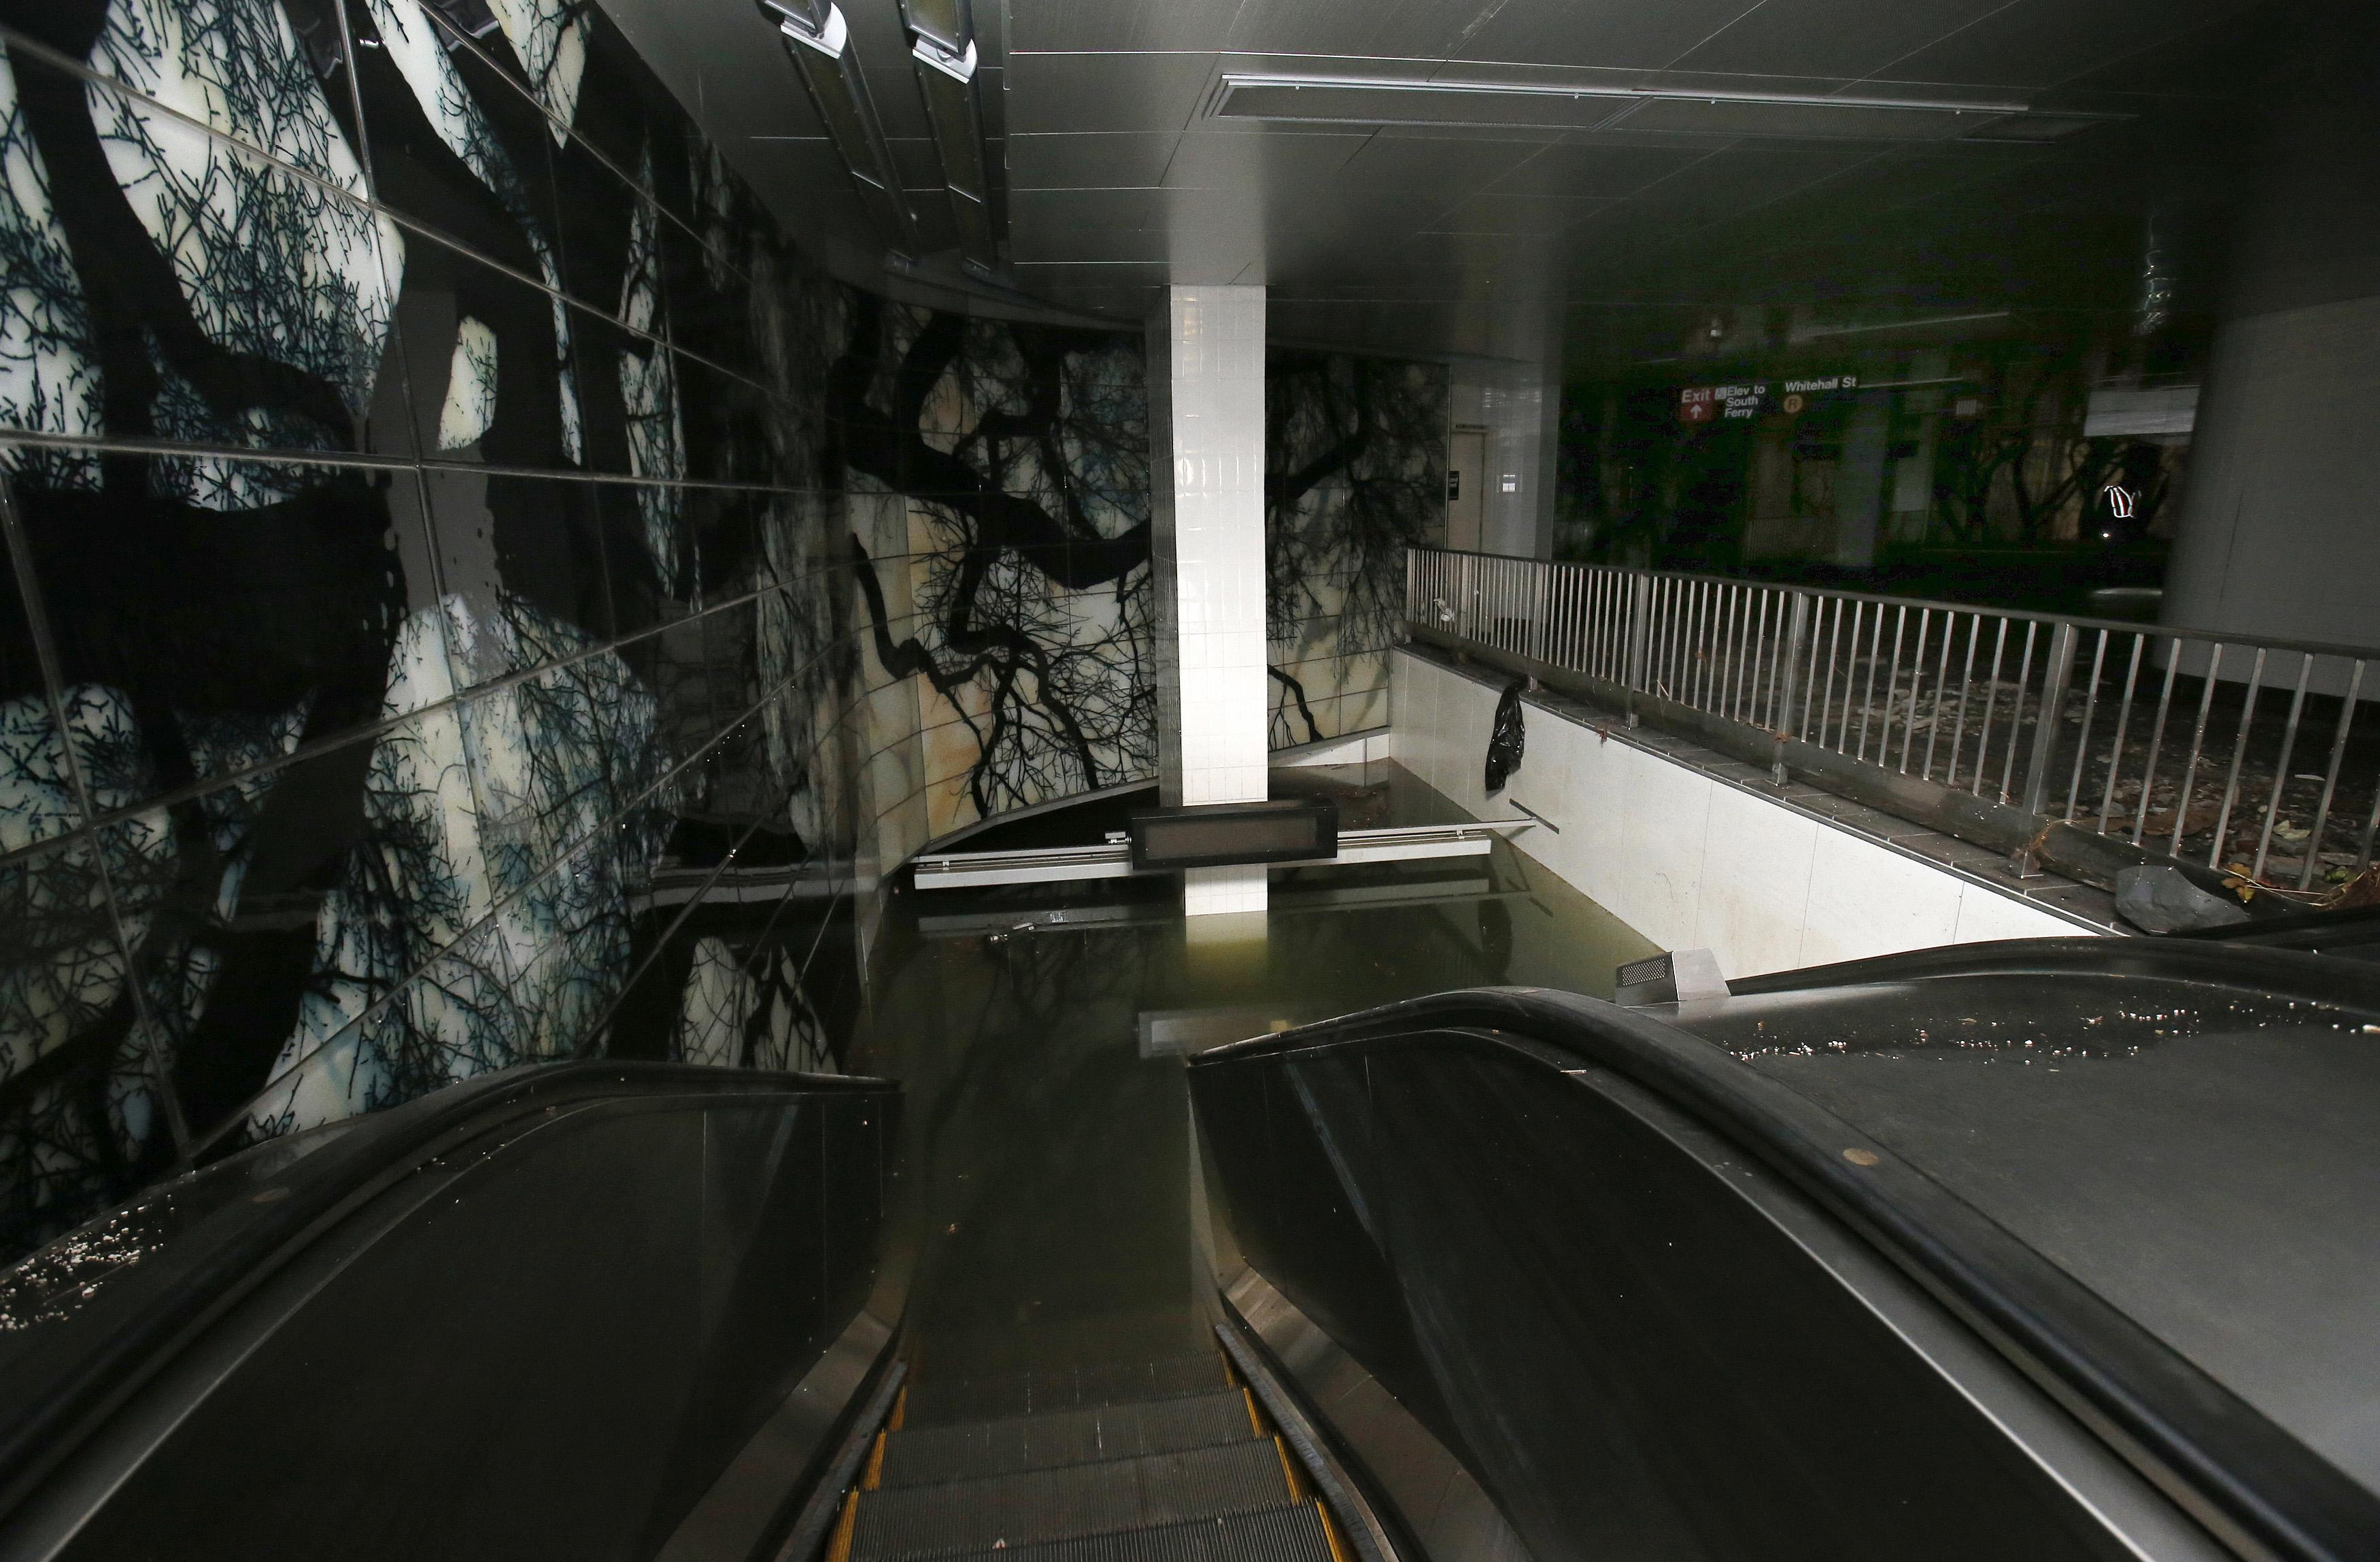 South Street Ferry Subway Station Escalator Before